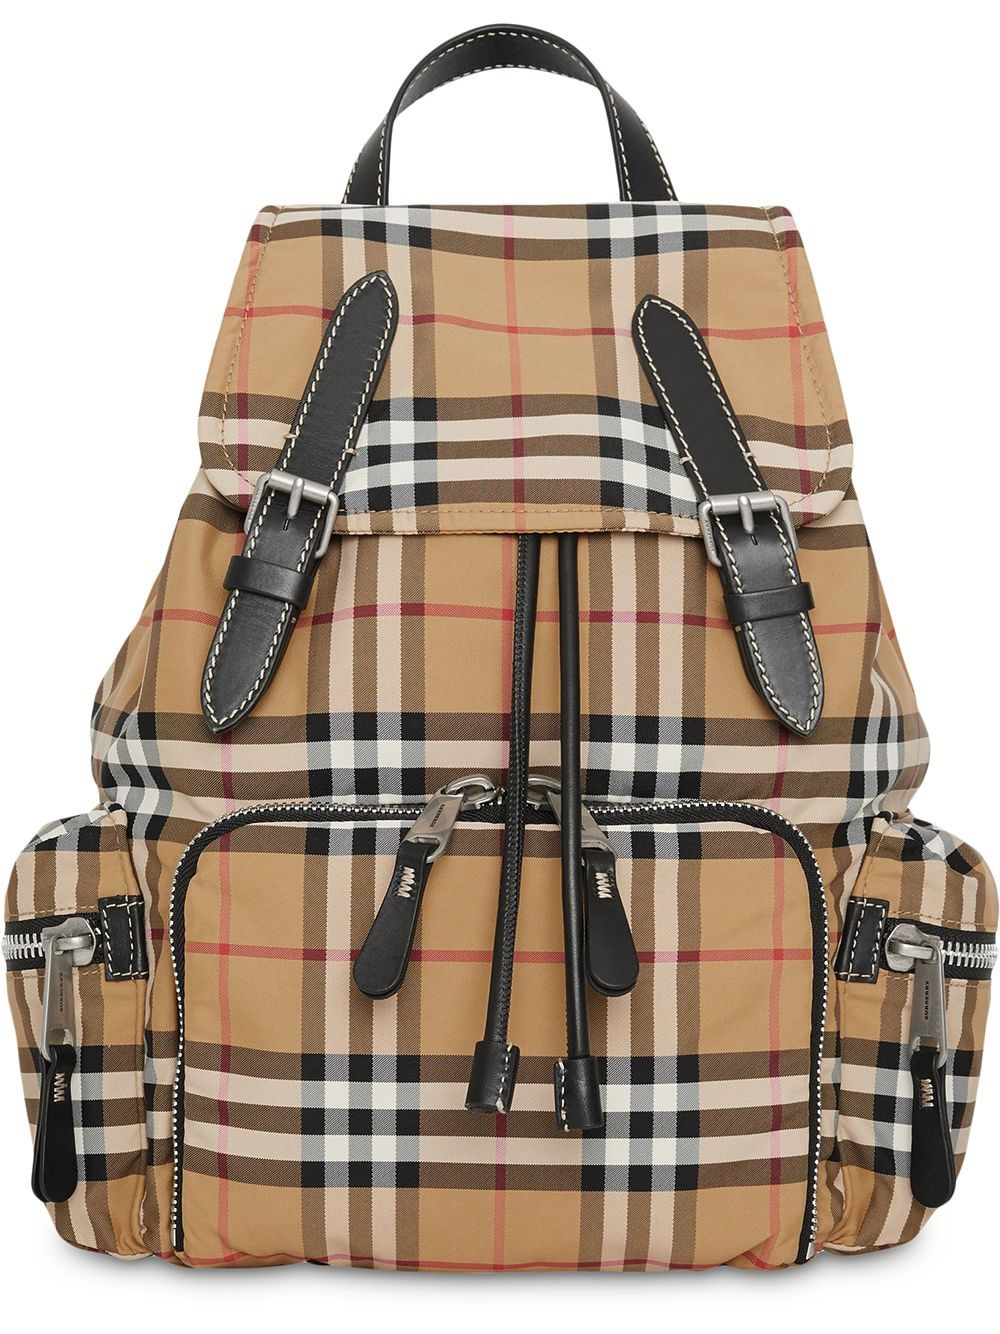 e2b2d93cd553 burberry london england BACKPACK available on montiboutique.com - 26163